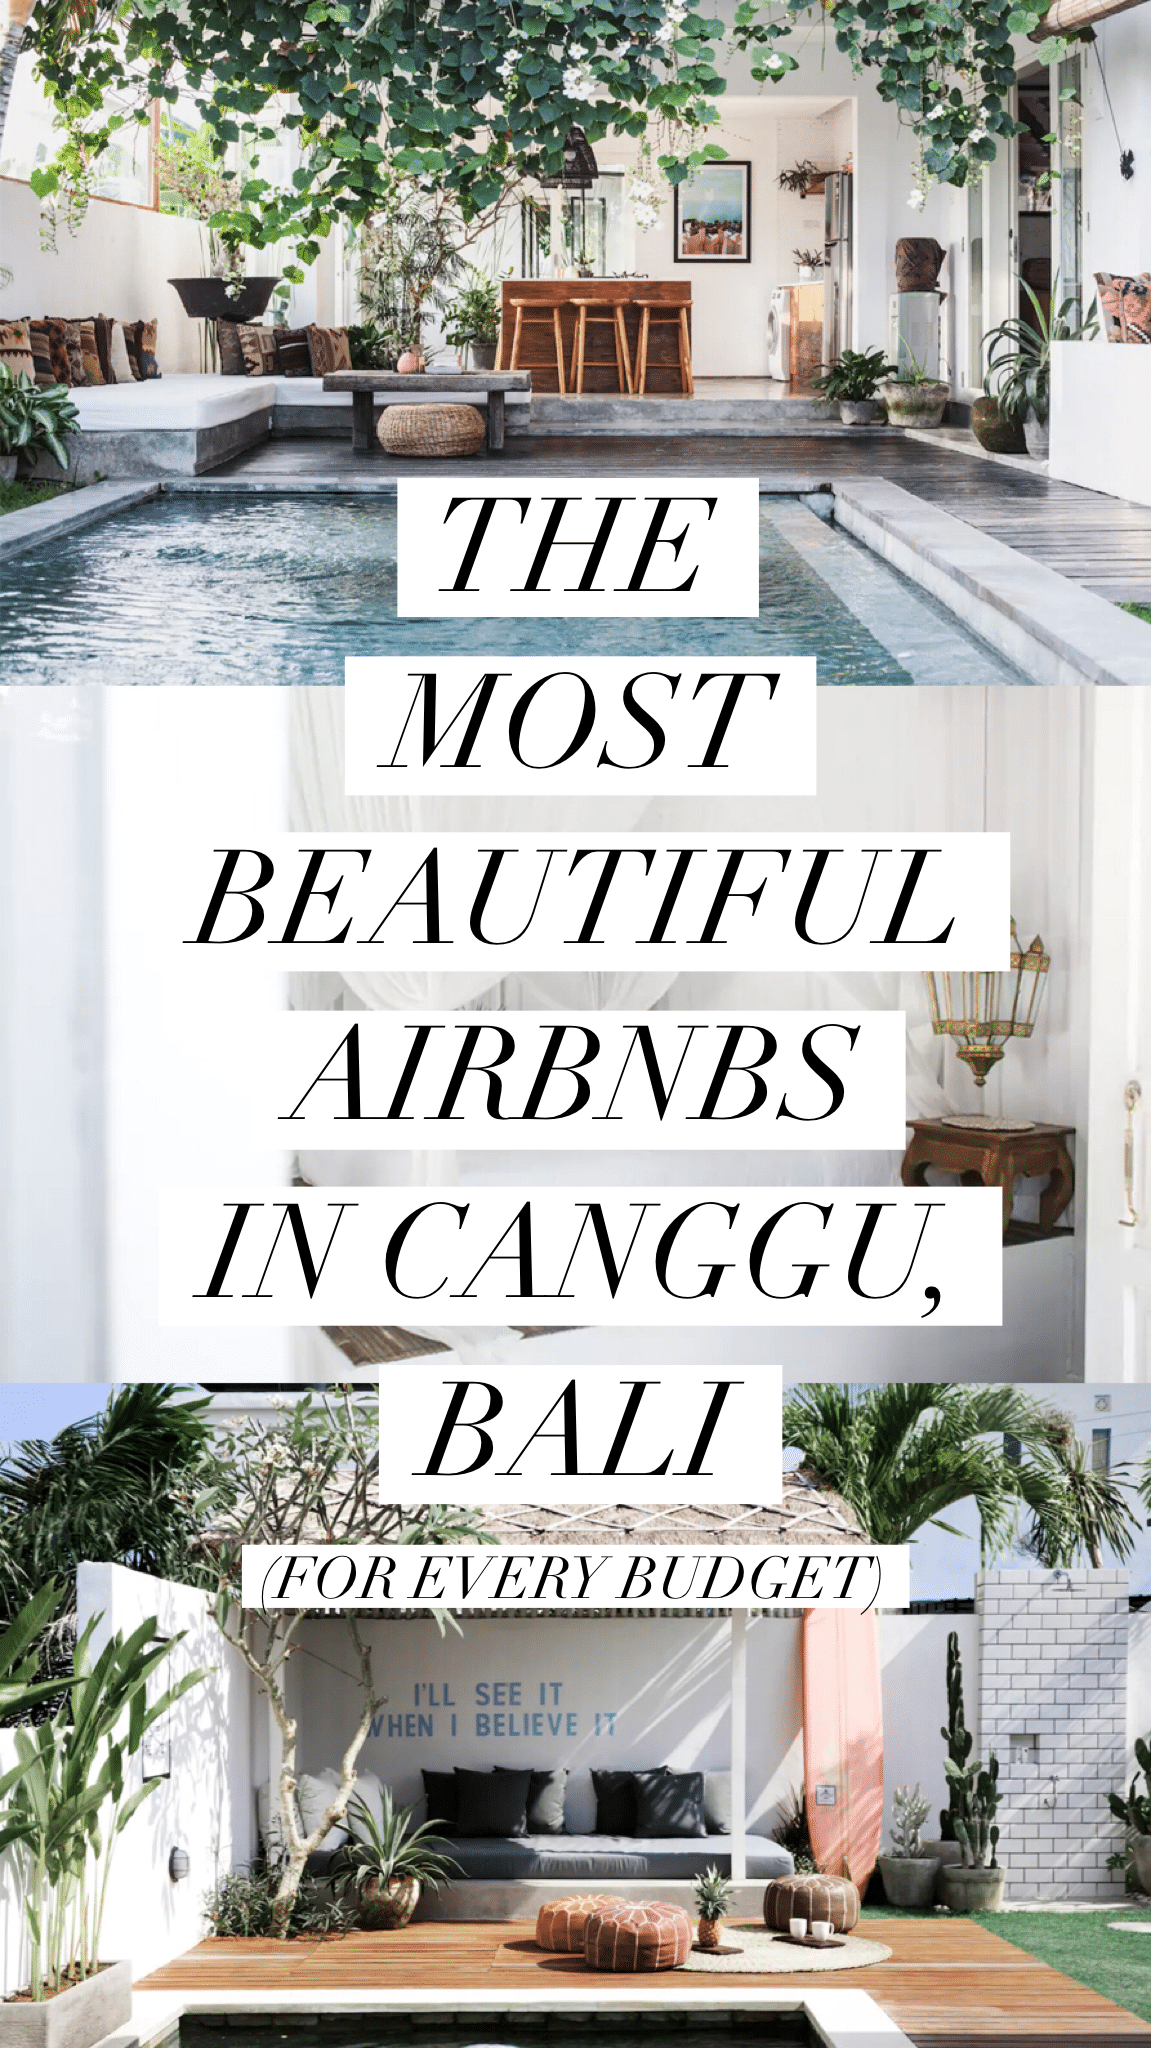 The Most Beautiful Airbnbs in Canggu, Bali For Every Budget - Live Like It's the Weekend